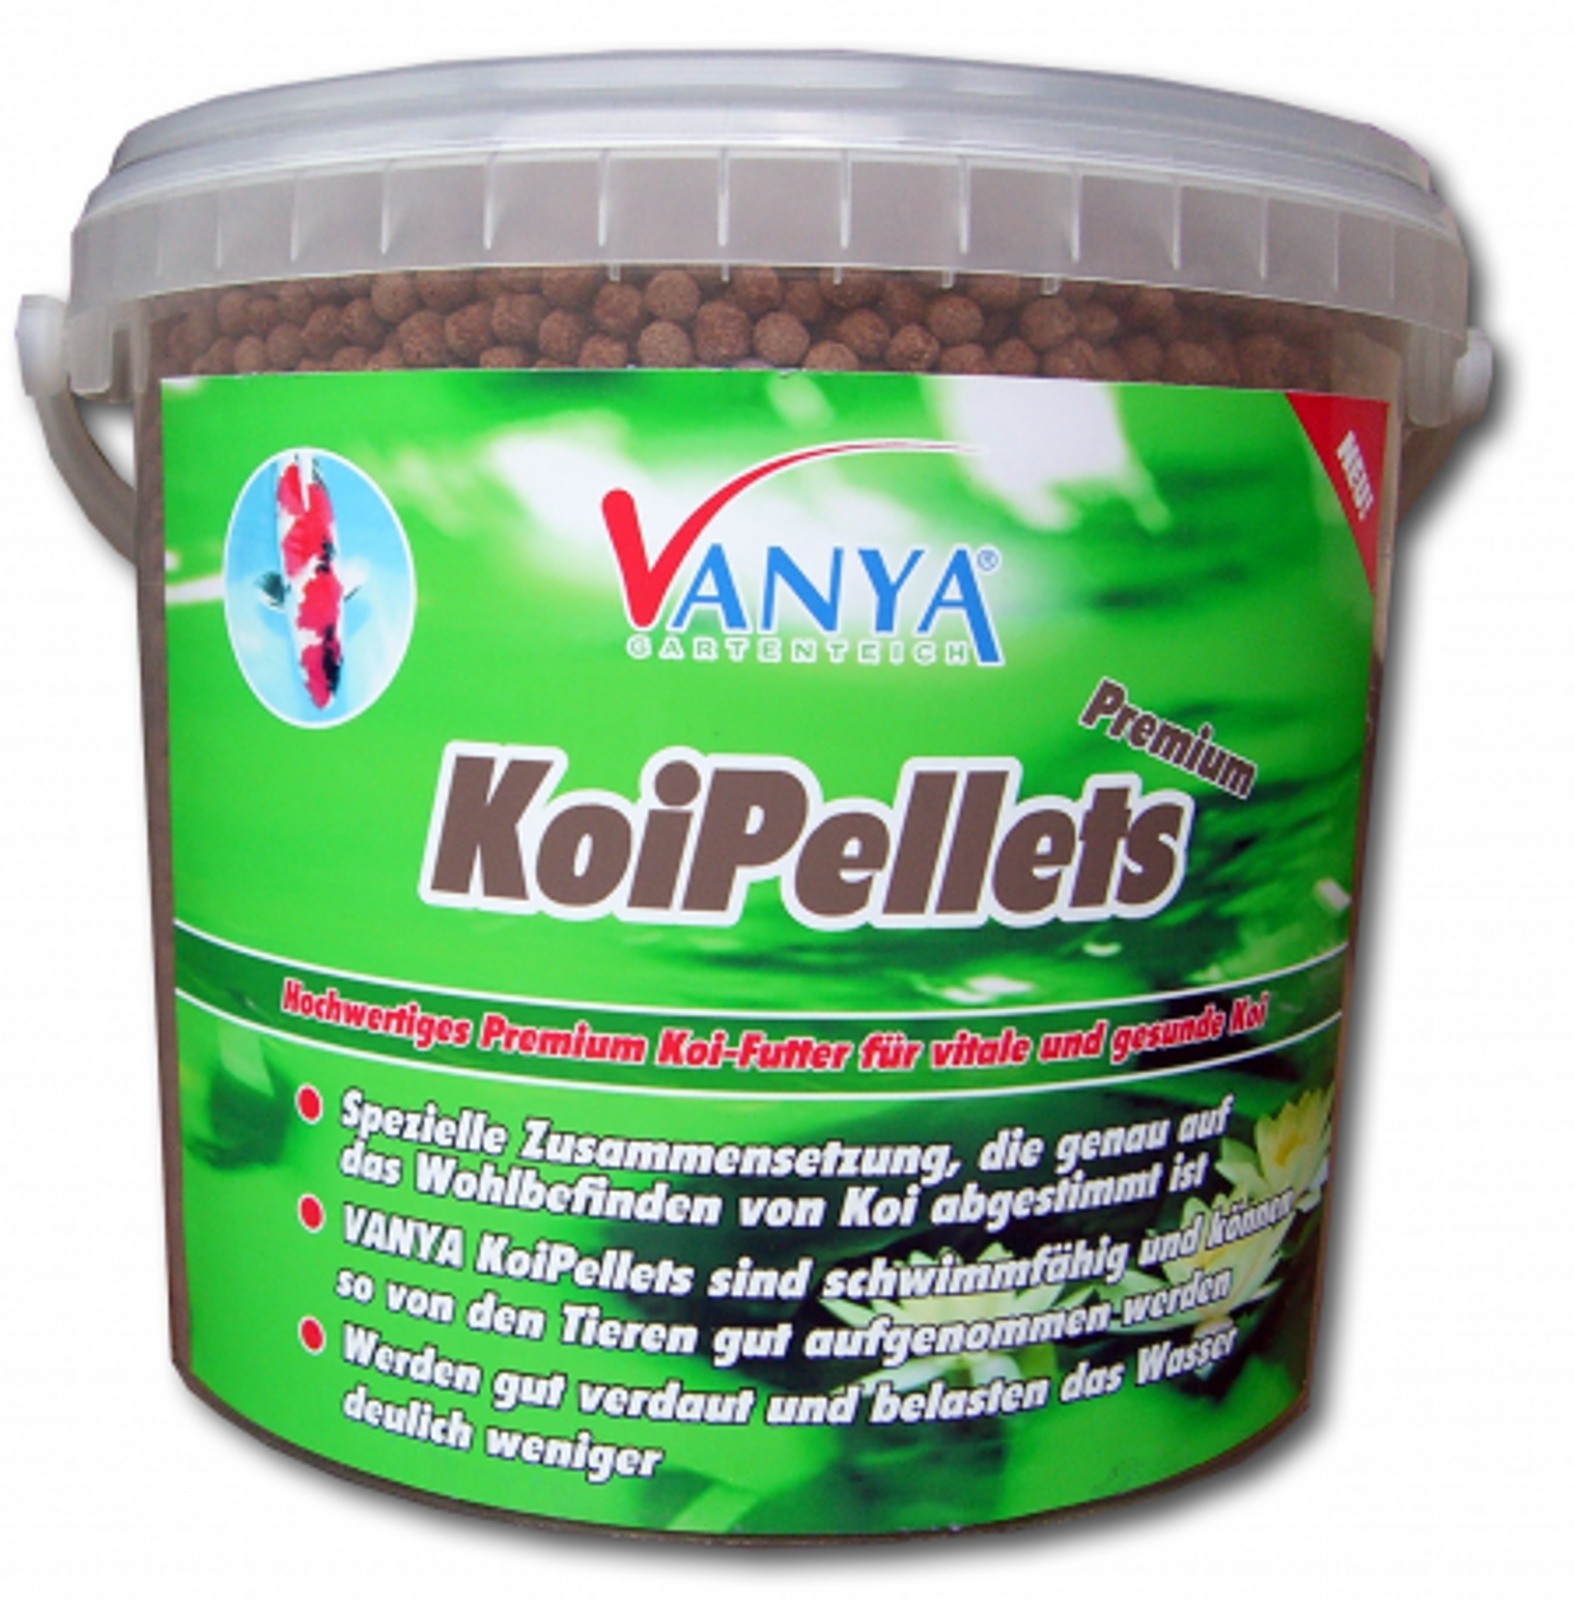 VANYA KoiPellets PREMIUM, 5 mm - 5.000 ml